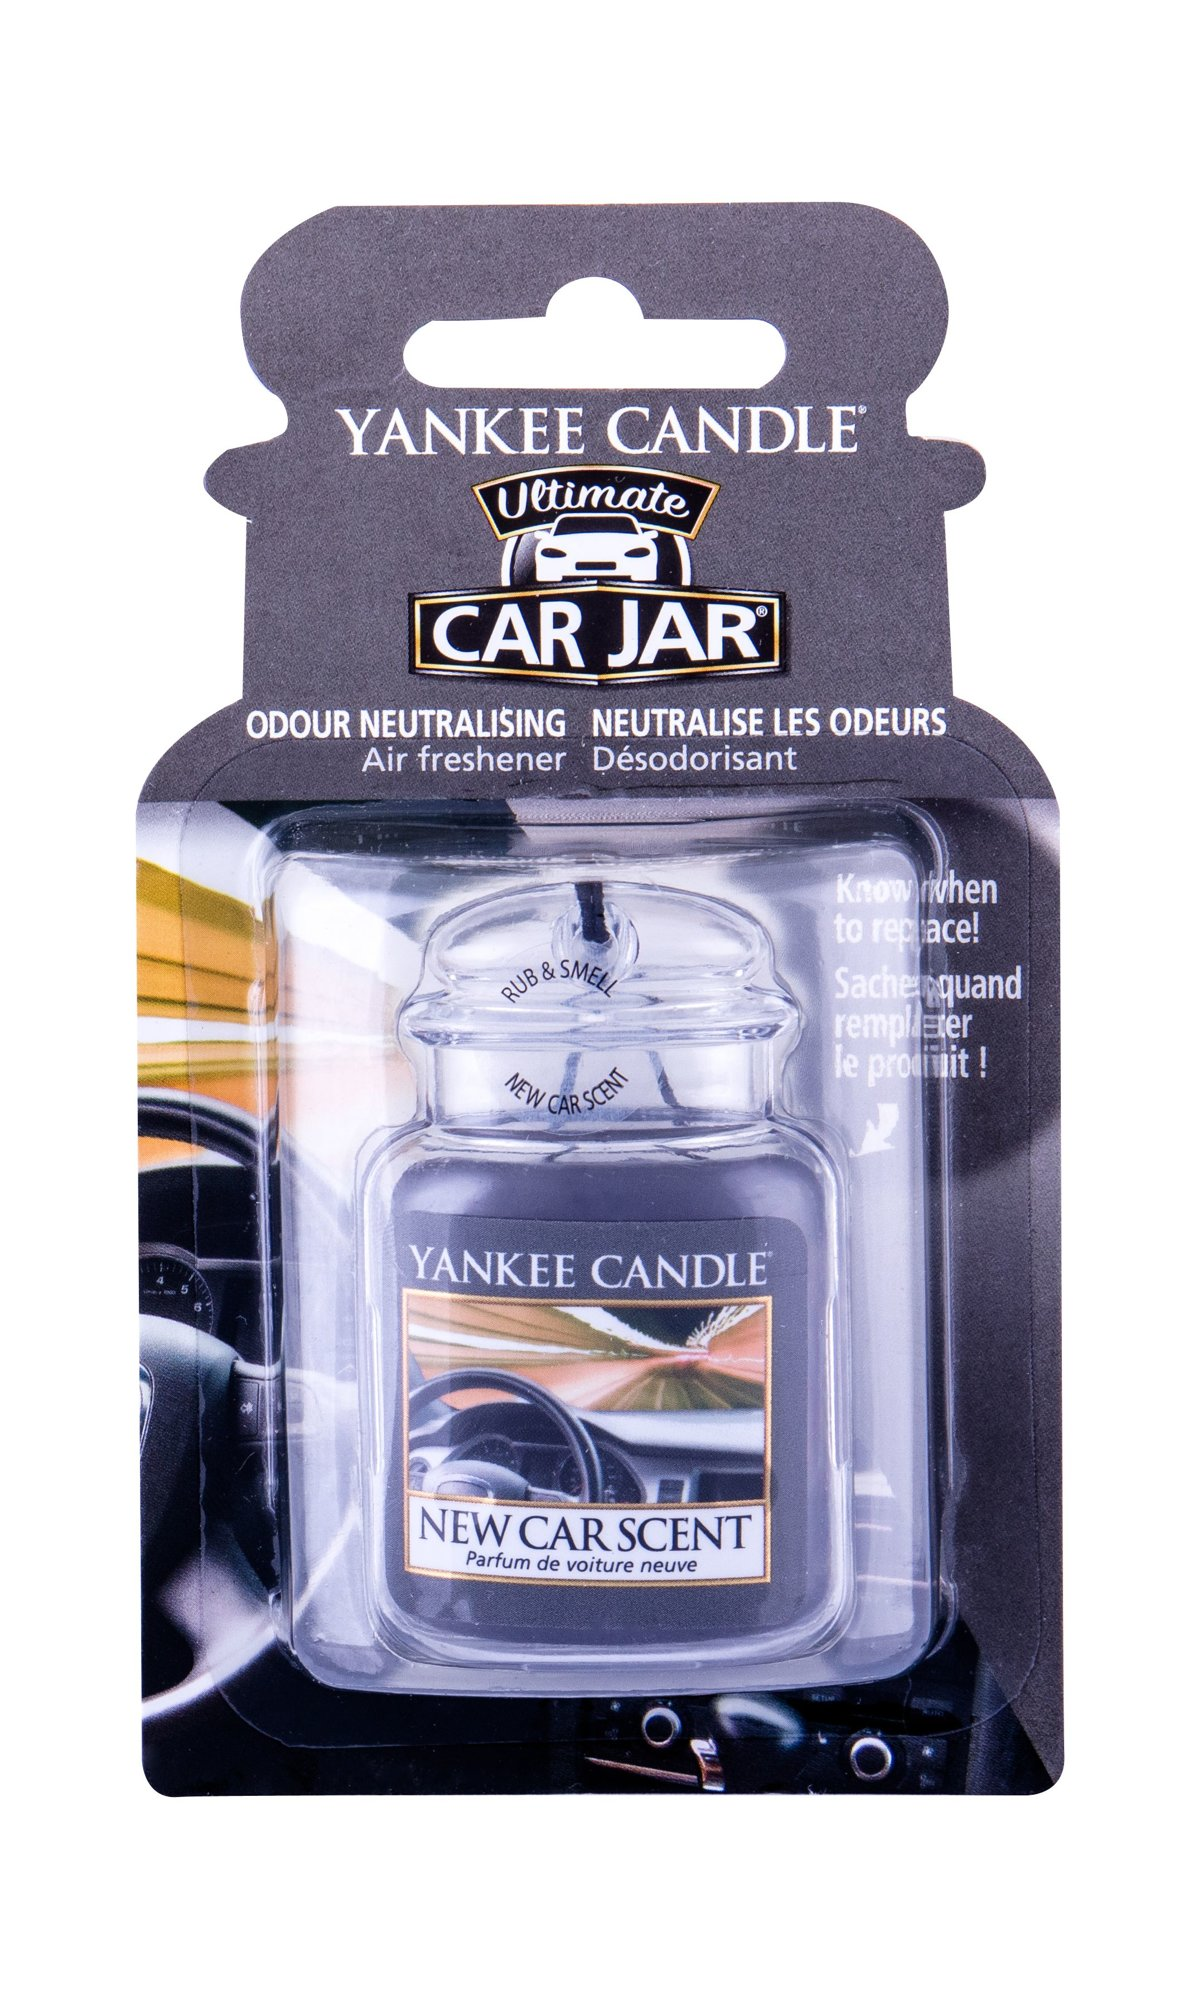 Yankee Candle New Car Scent Car Jar (Vůně do auta, U, 1 ks)